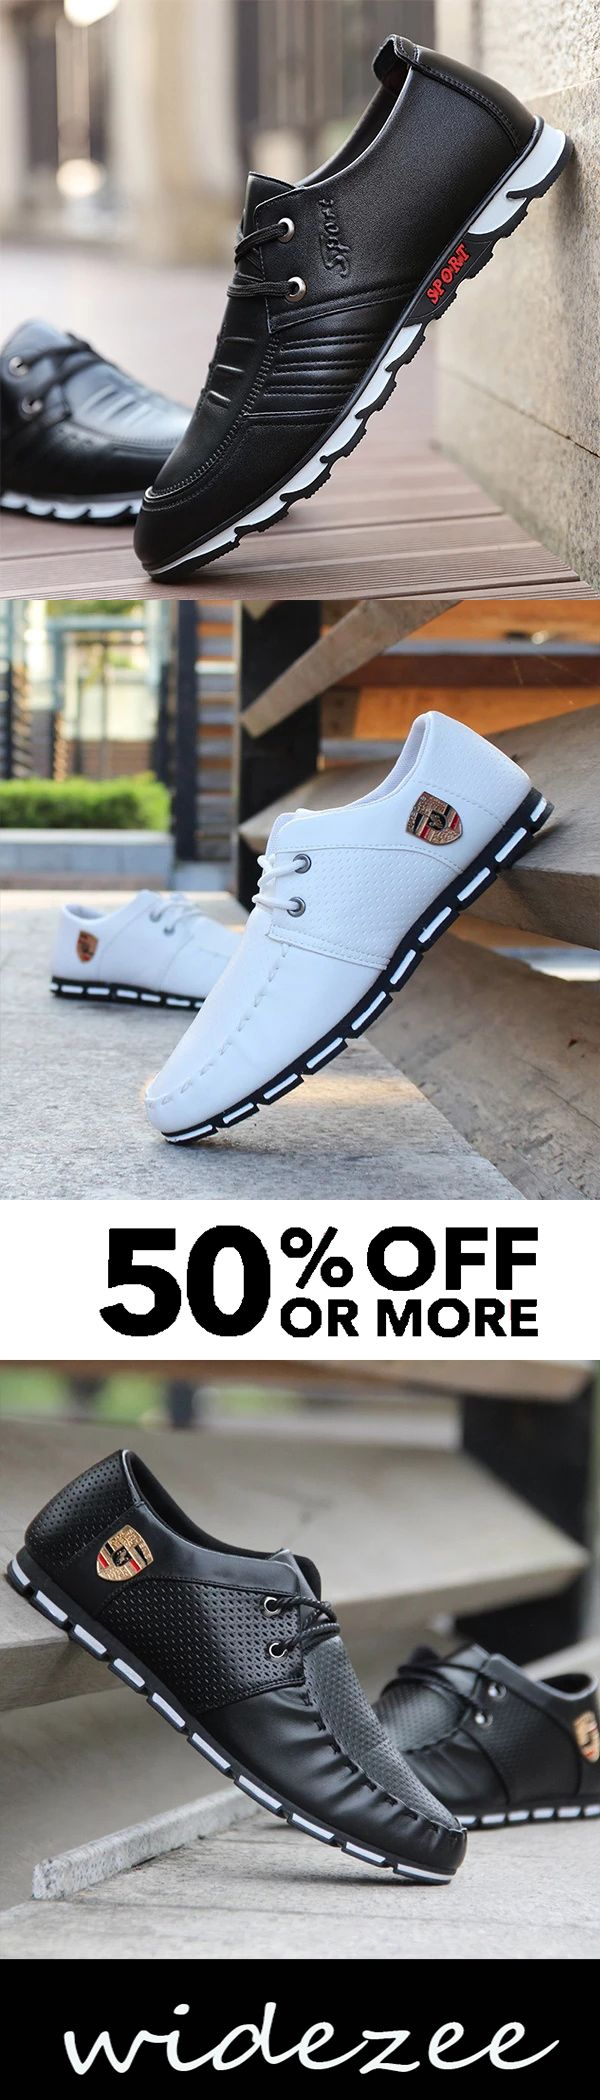 Mens Lace-up Round Toe Fashion Flat Shoes 3